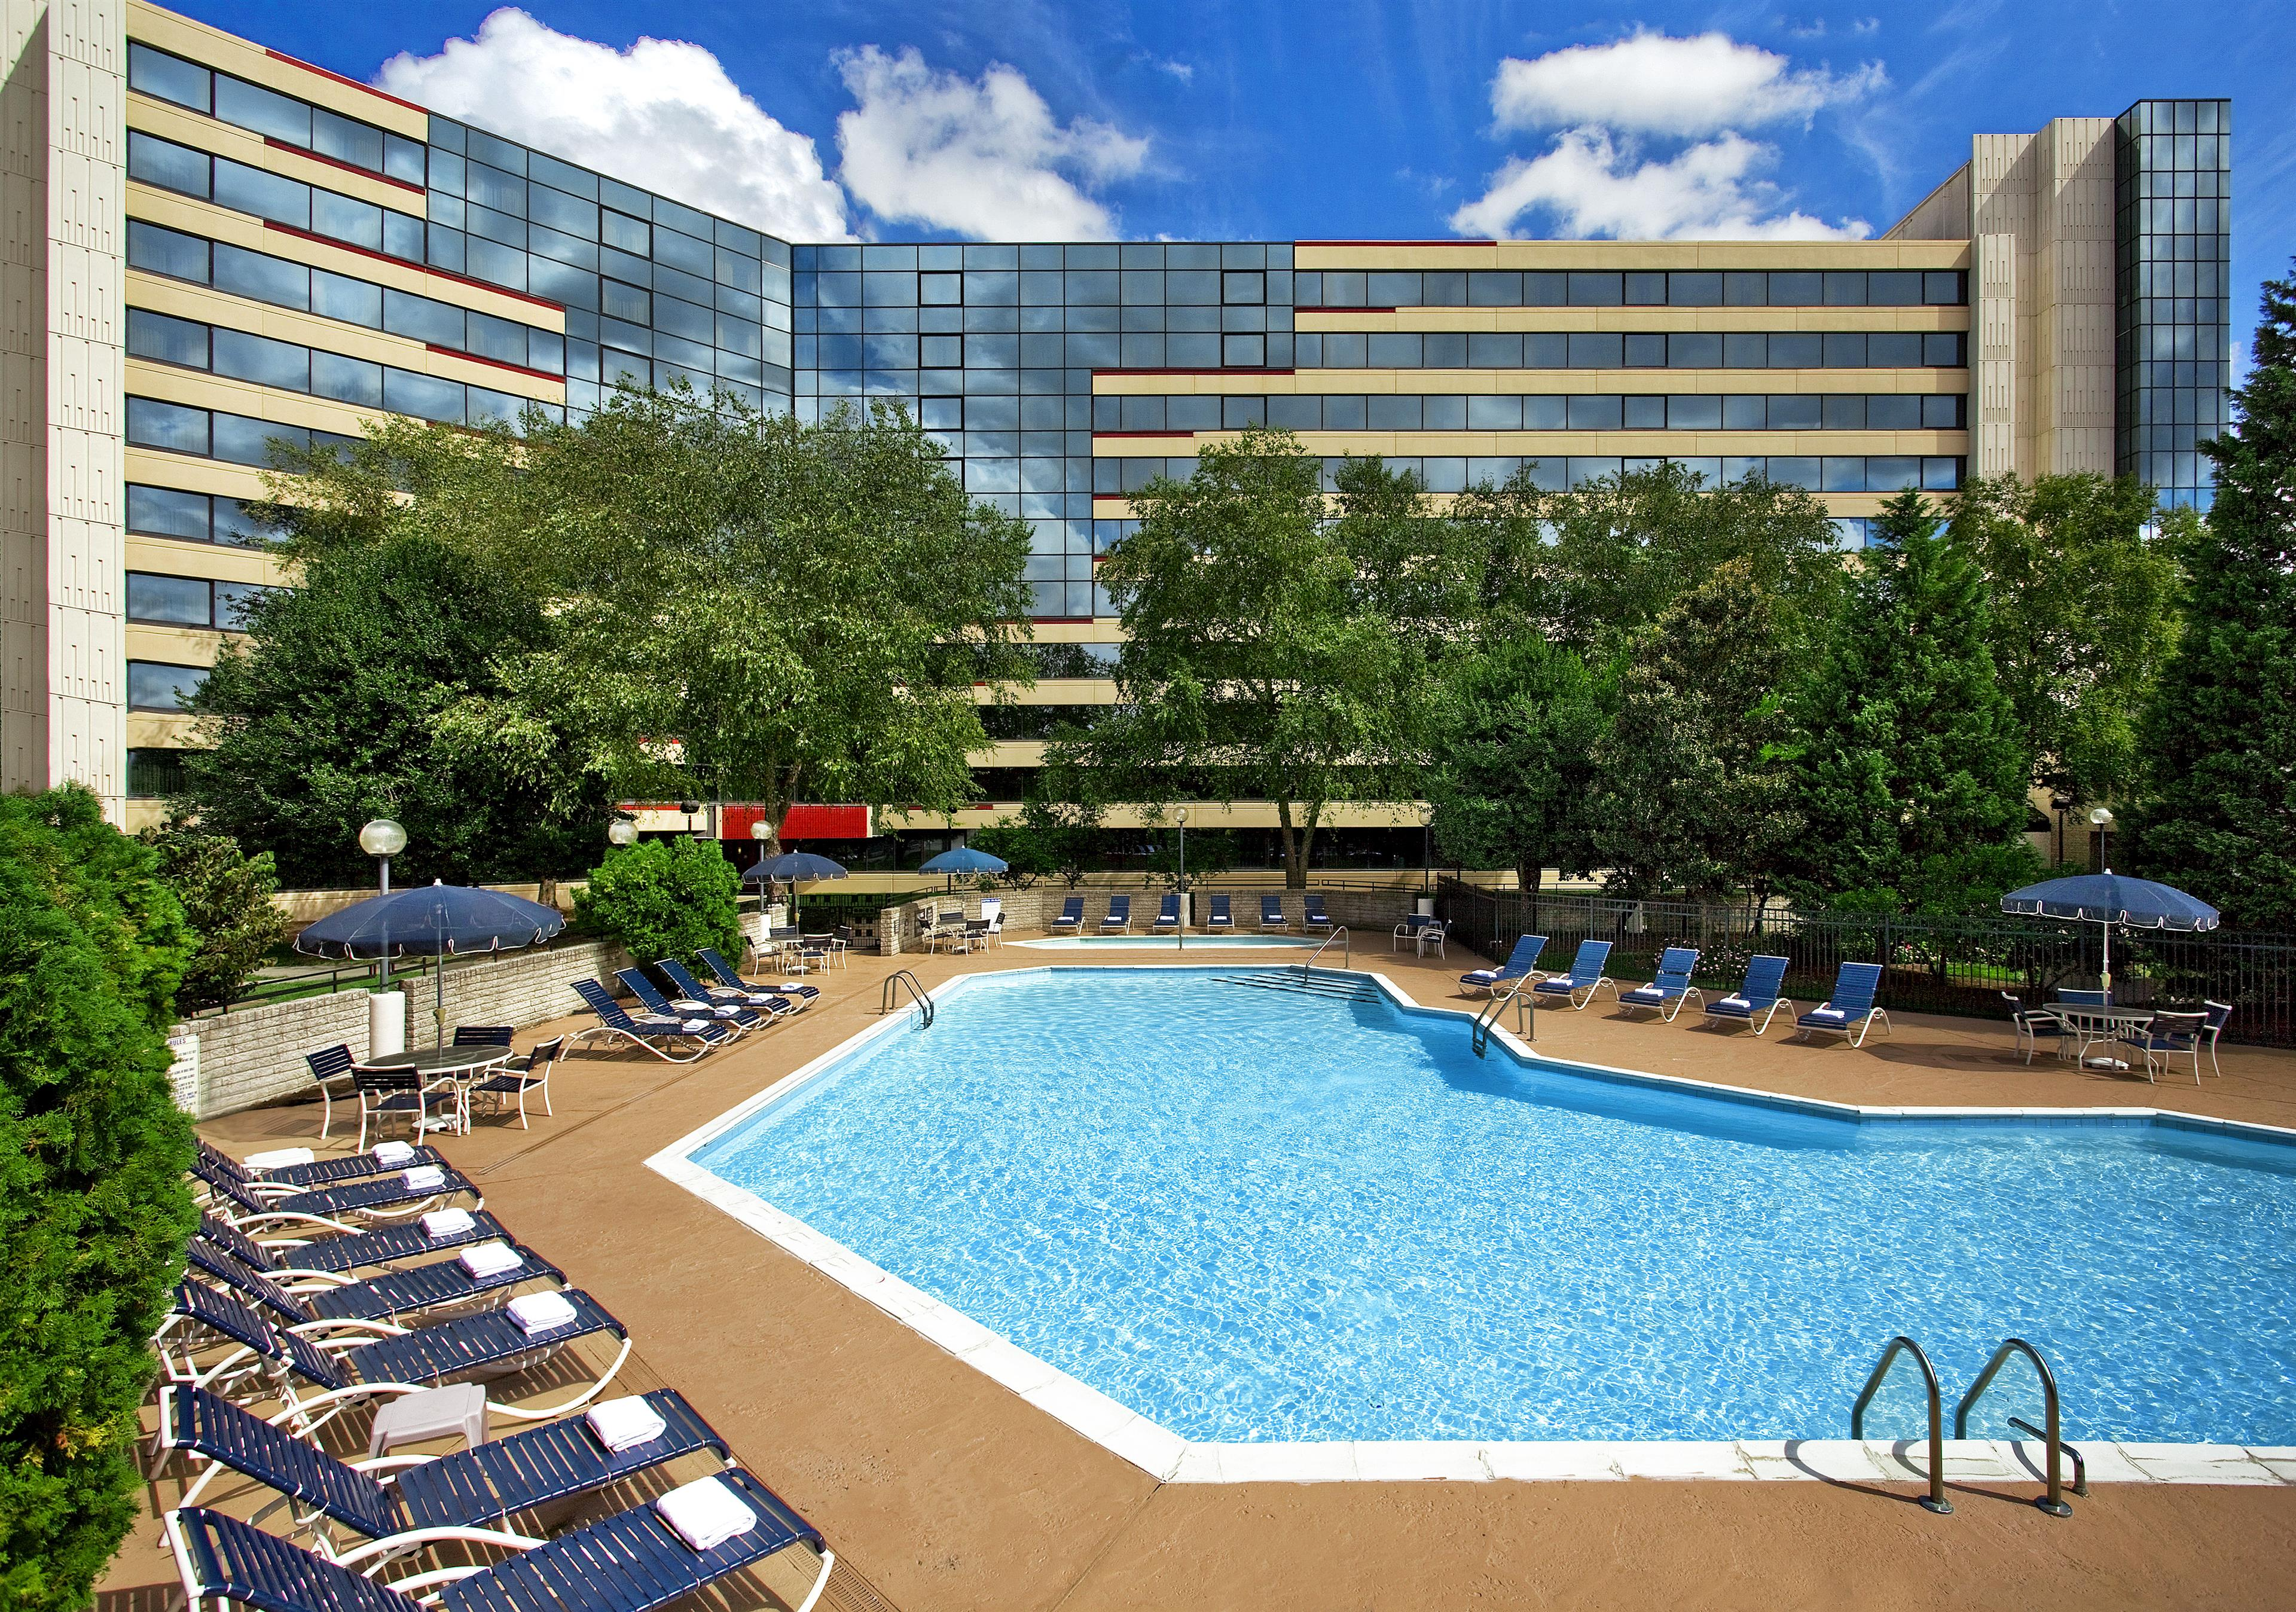 Sheraton Imperial Hotel Convention Center In Durham Nc Whitepages